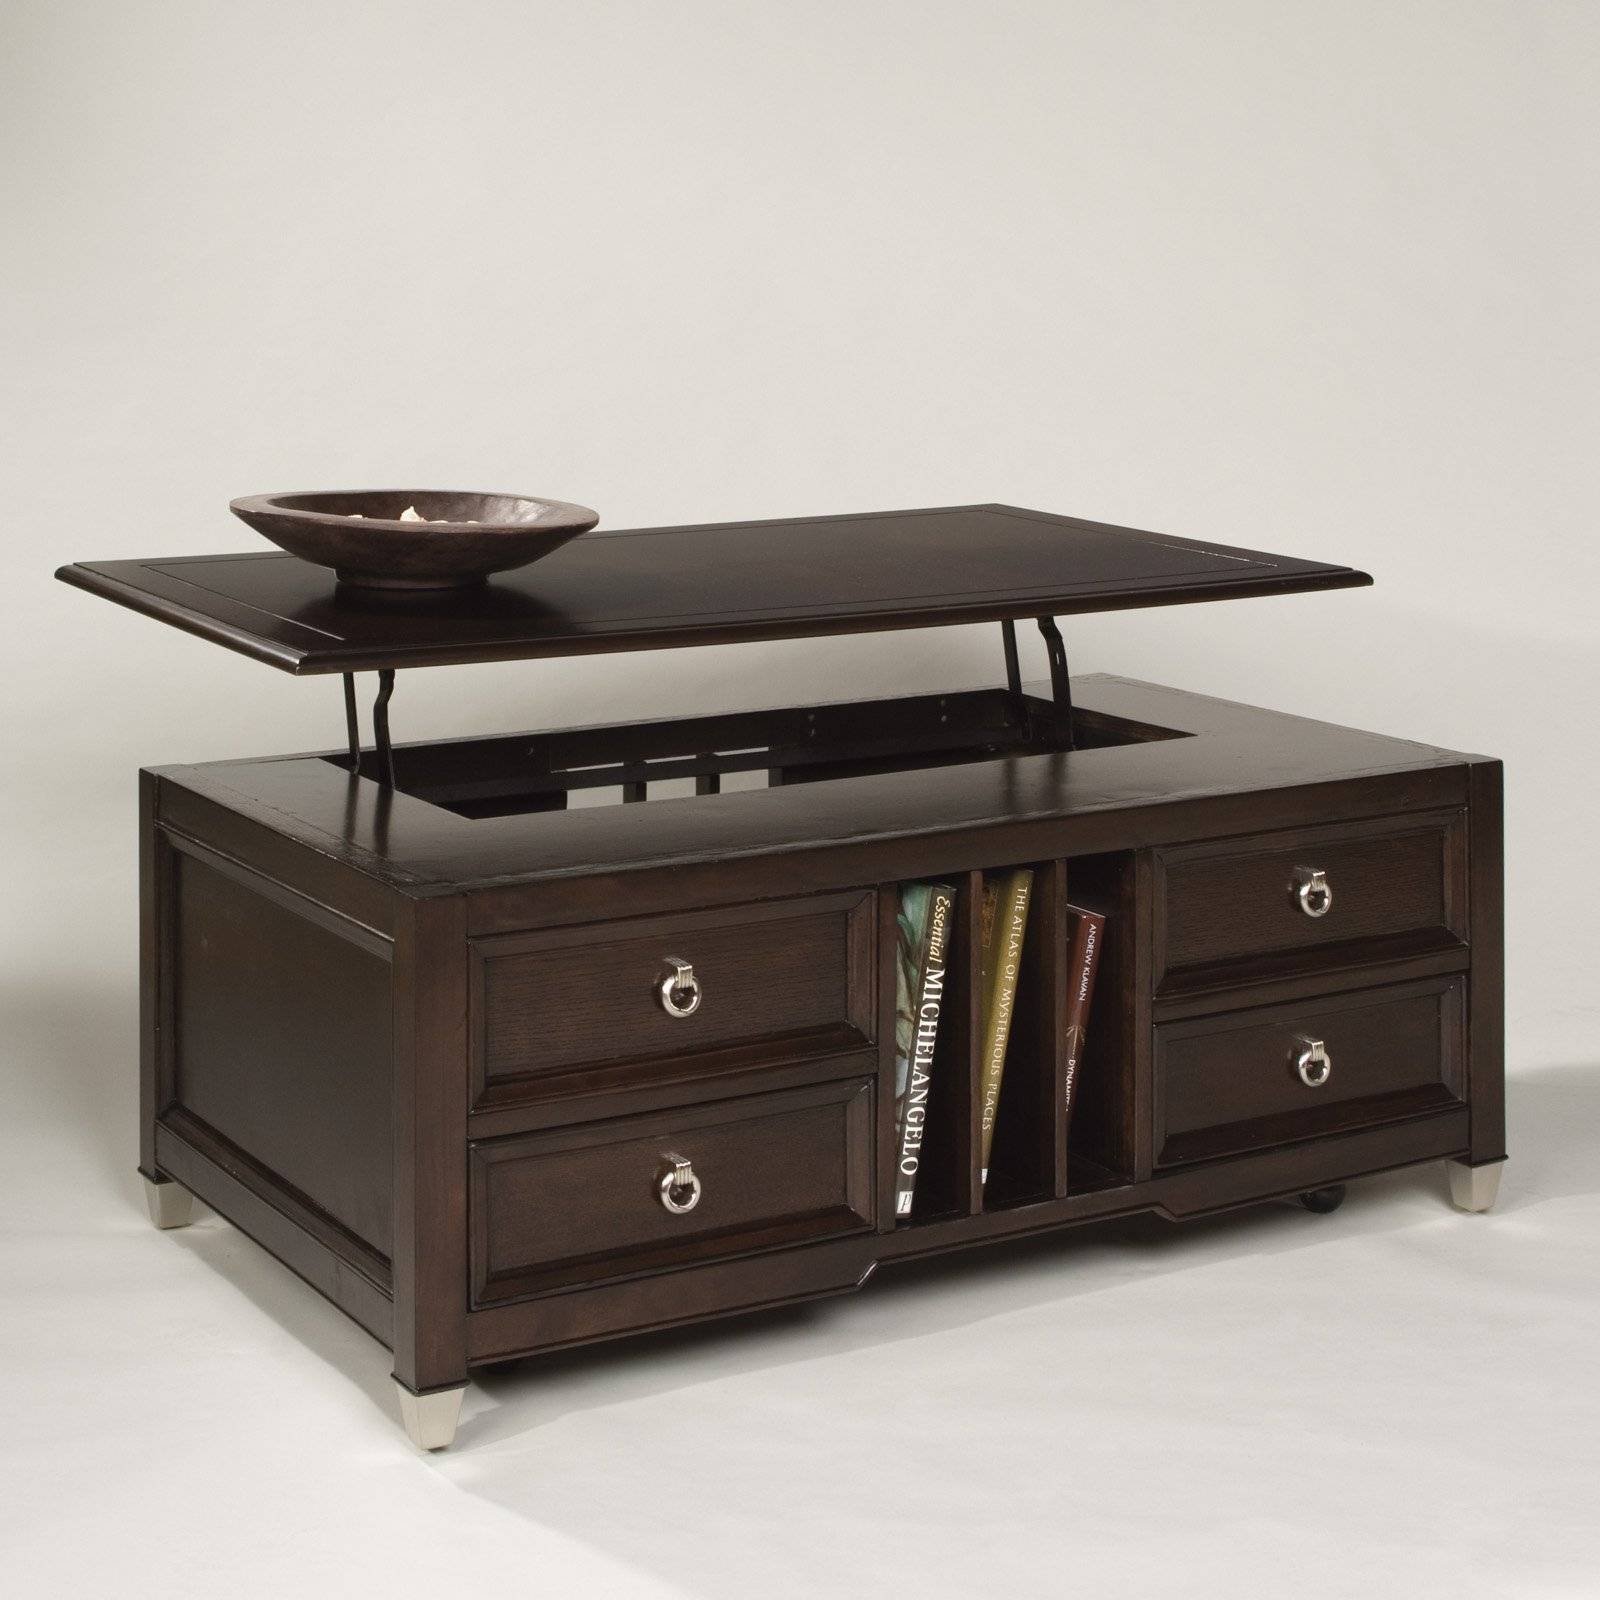 Belham Living Hampton Storage And Lift Top Coffee Table | Hayneedle inside Quality Coffee Tables (Image 4 of 30)